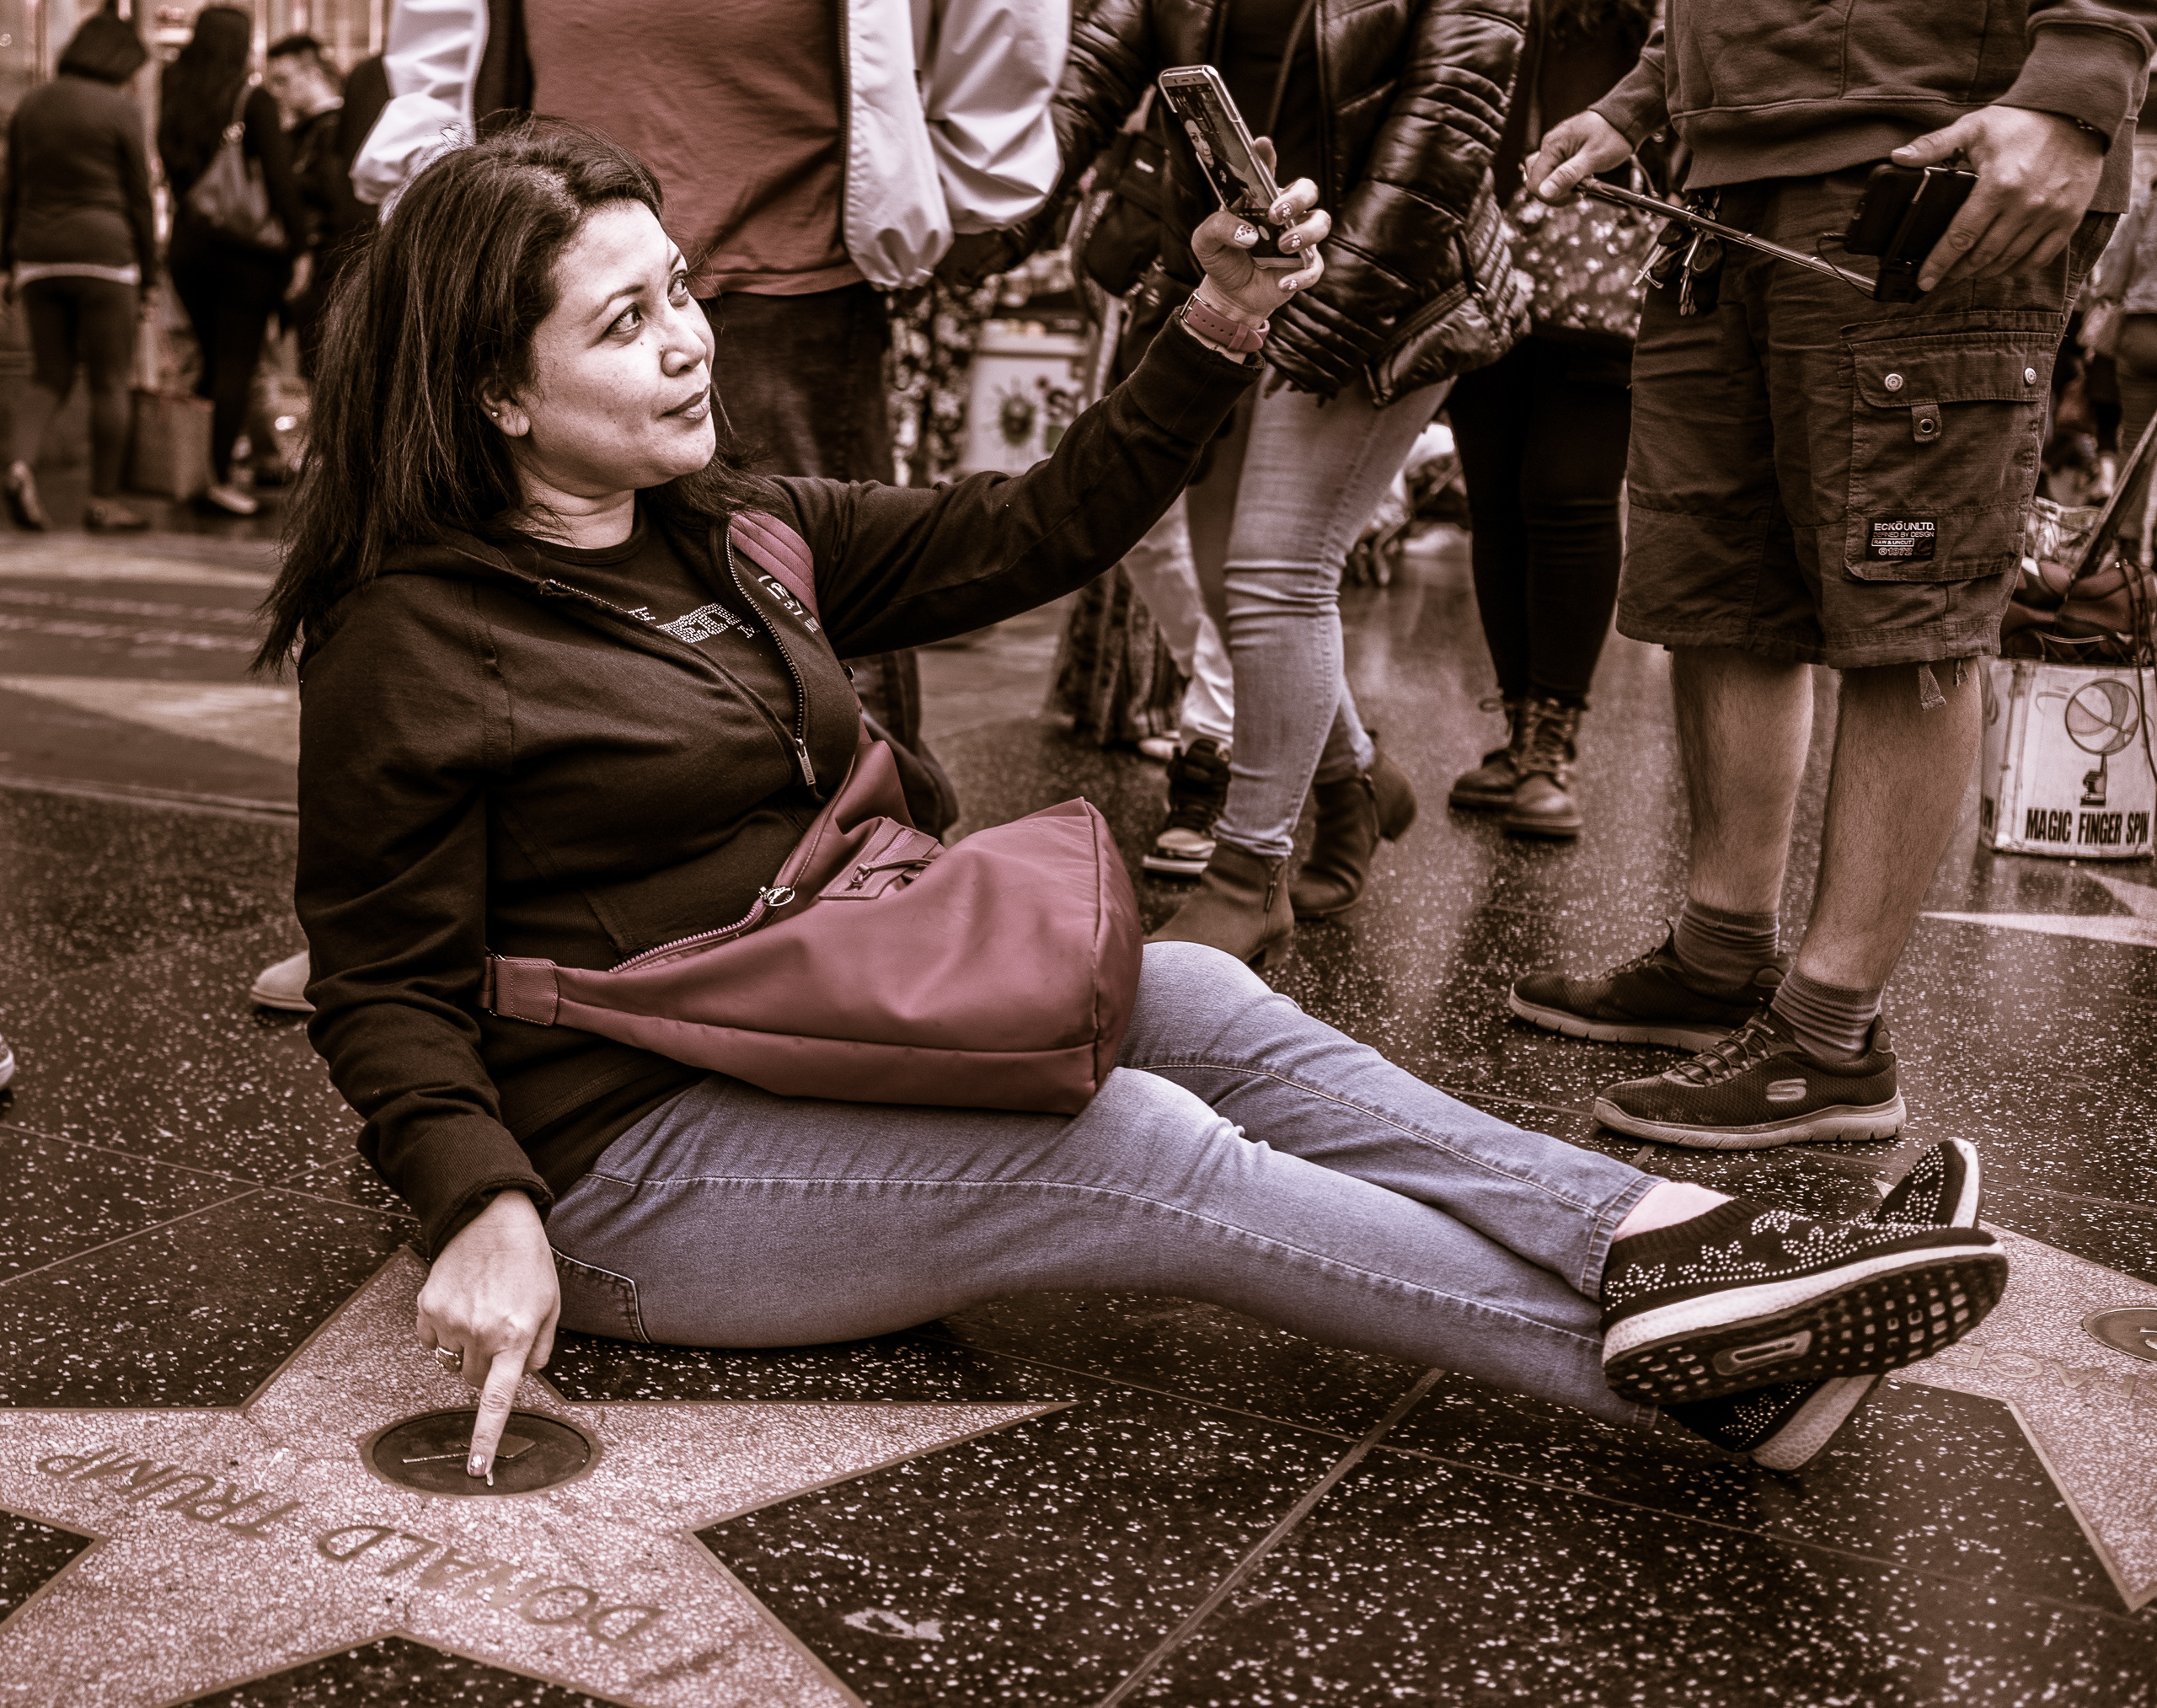 a woman sits on the ground next to Donald Trump's star on Hollywood Blvd. She holds her cell phone high in the air to capture the scene. With her other hand she points to Donald Trump's name and smiles.